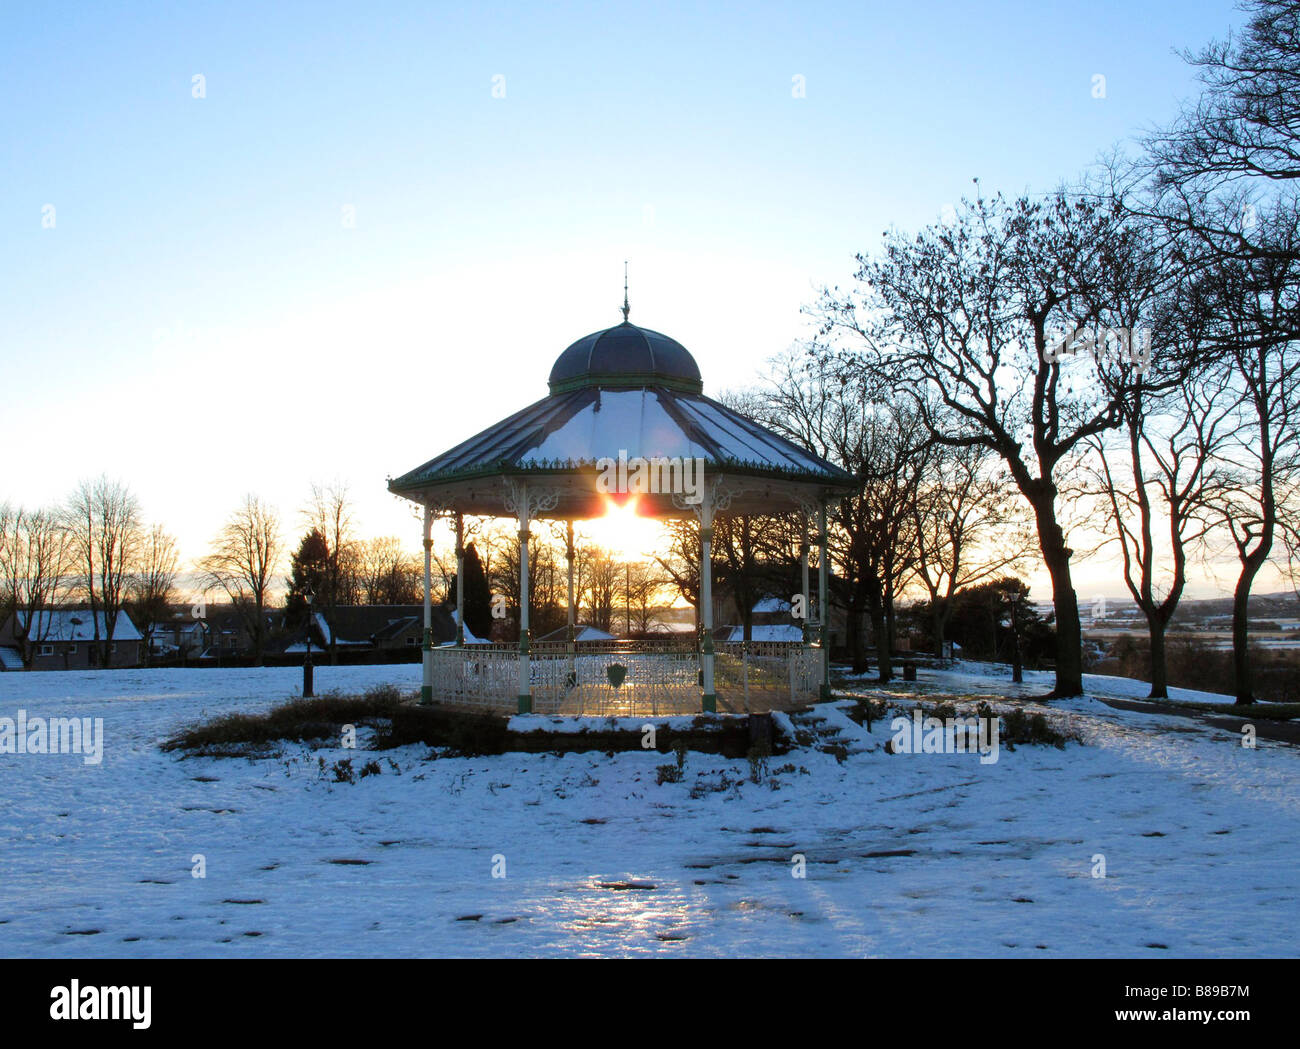 The Bandstand in Peel Park,Kirkintilloch,                 East Dunbartonshire,Near Glasgow,Scotland,UK. - Stock Image